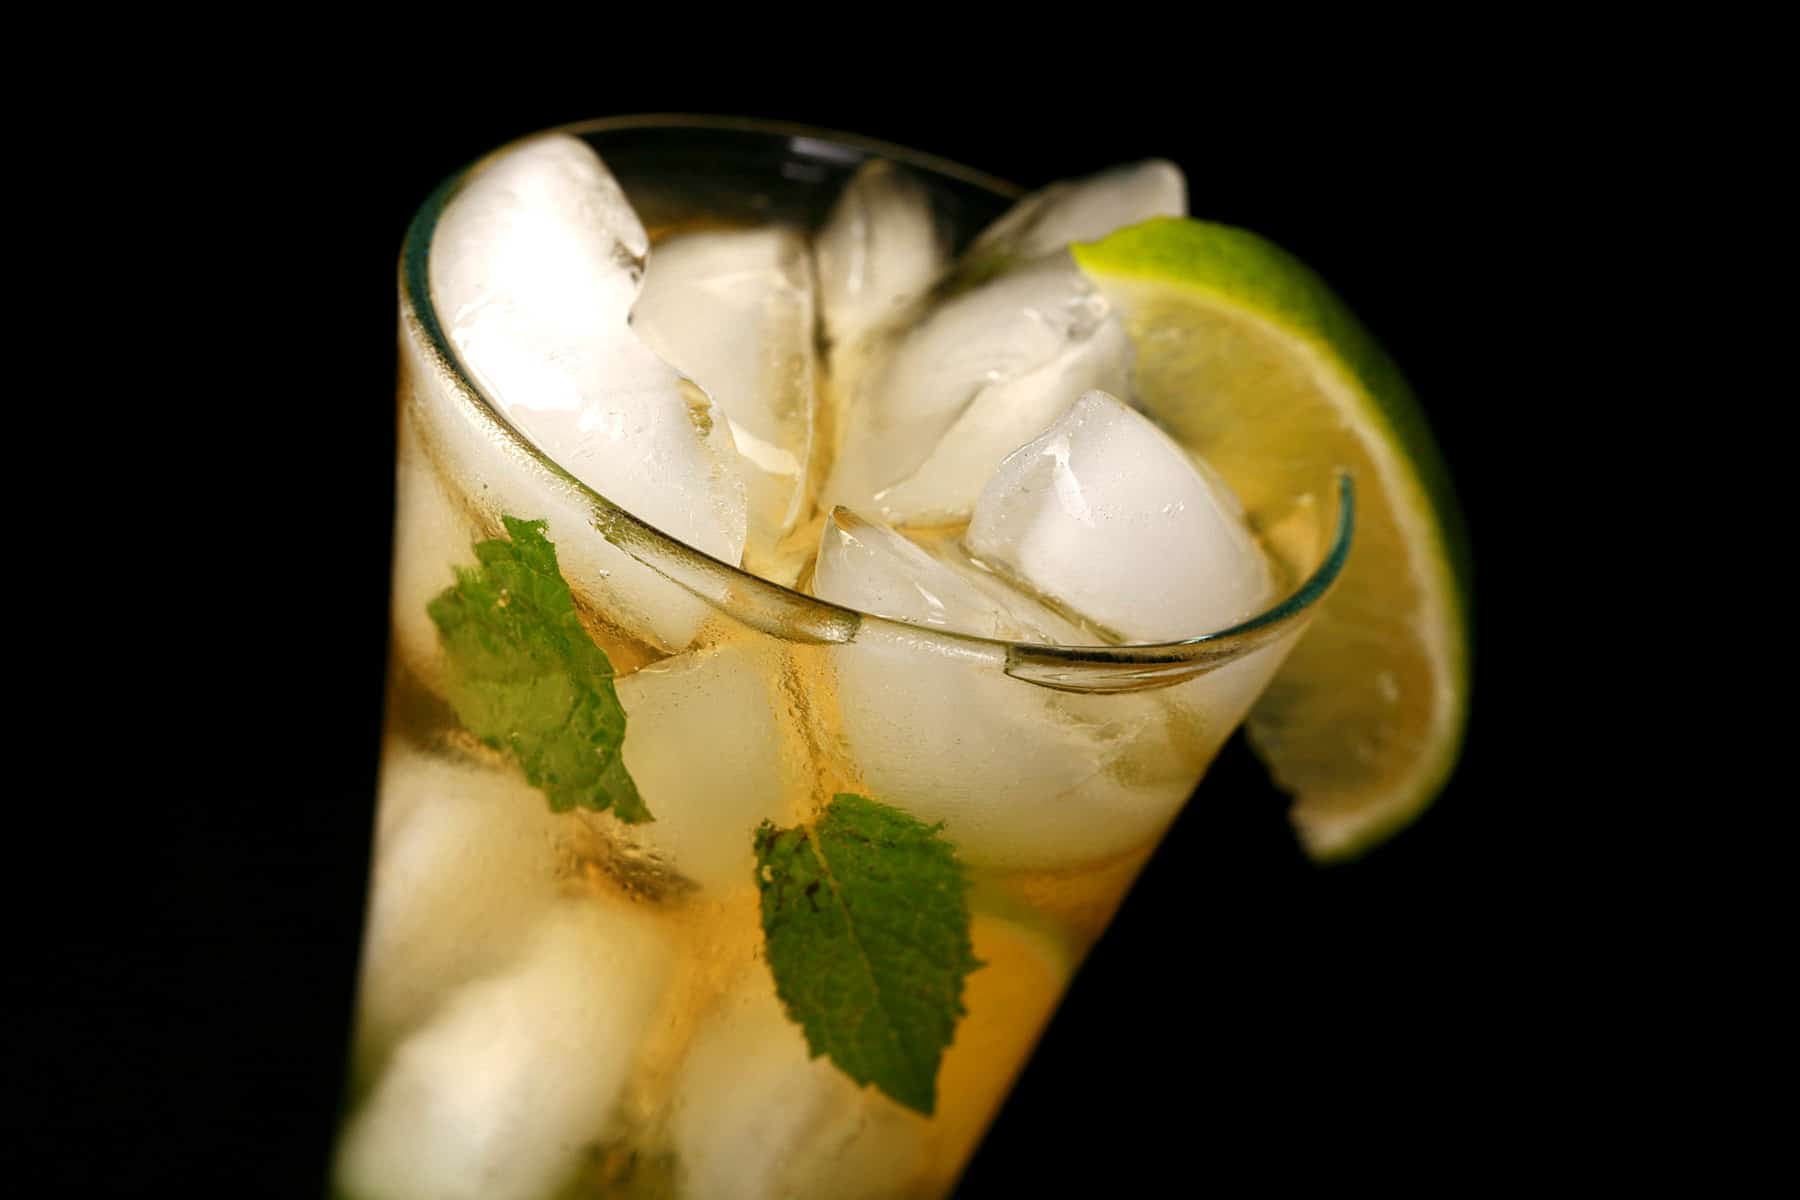 A close up view of Marie's Mojito Recipe - A tall glass with ice, limes, and mint in it, along with a pale amber liquid. It is garnished with a slice of lime.